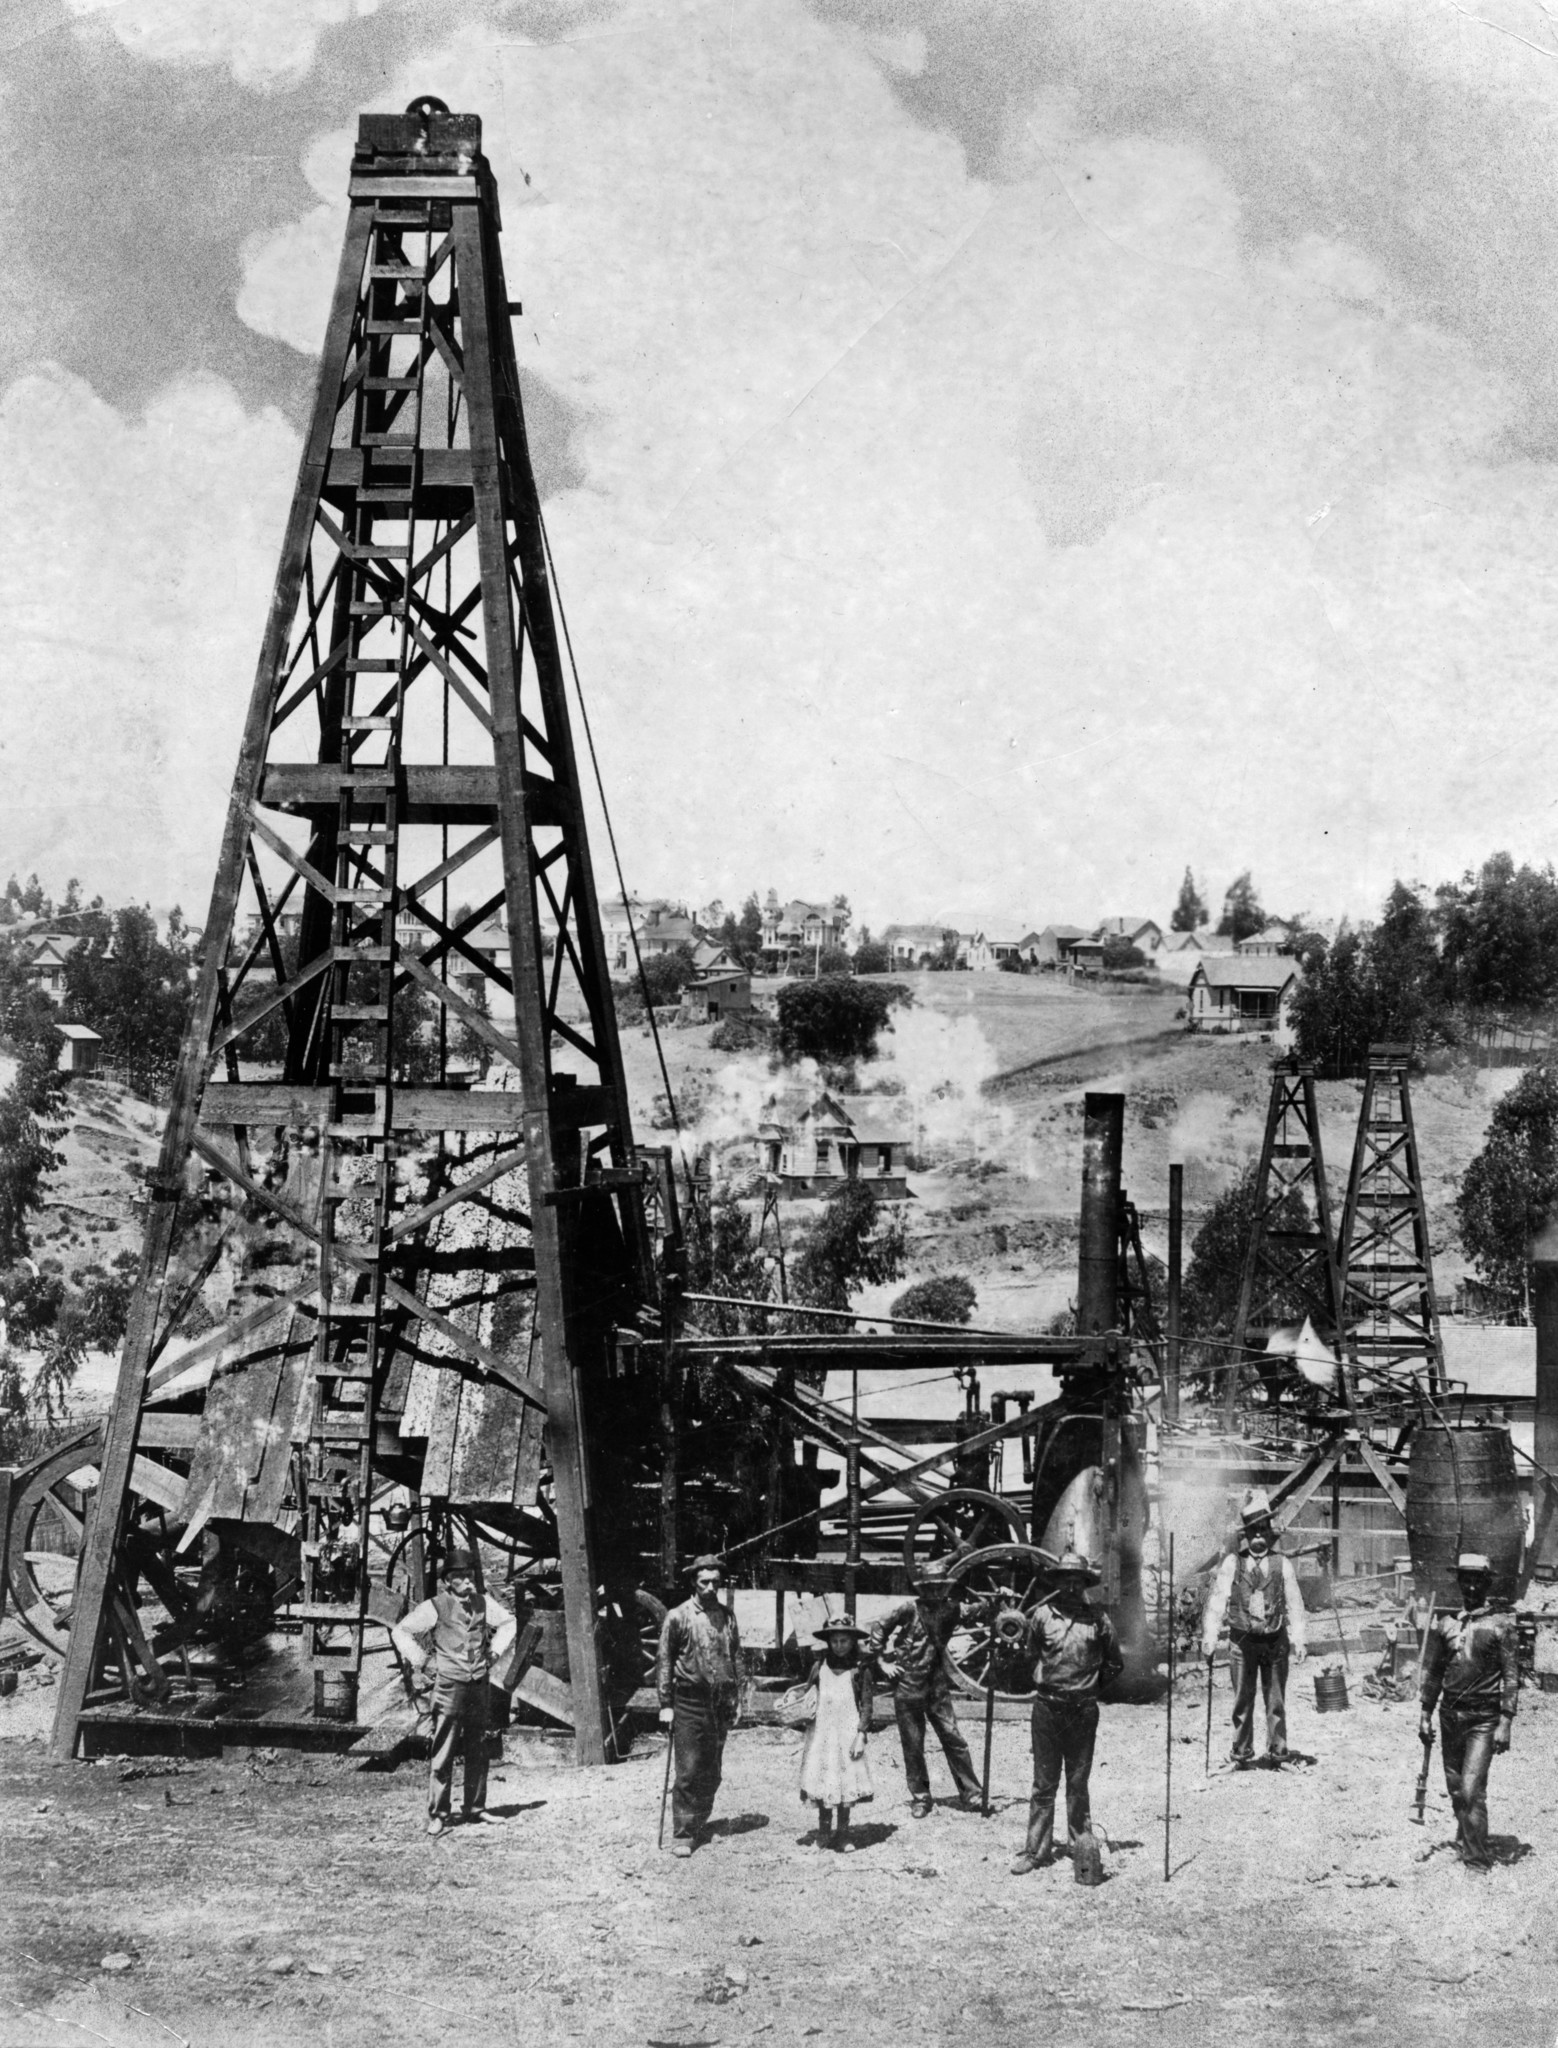 The Doheny oil well, circa 1900, at what is now the corner of 2nd Street and Glendale Boulevard.